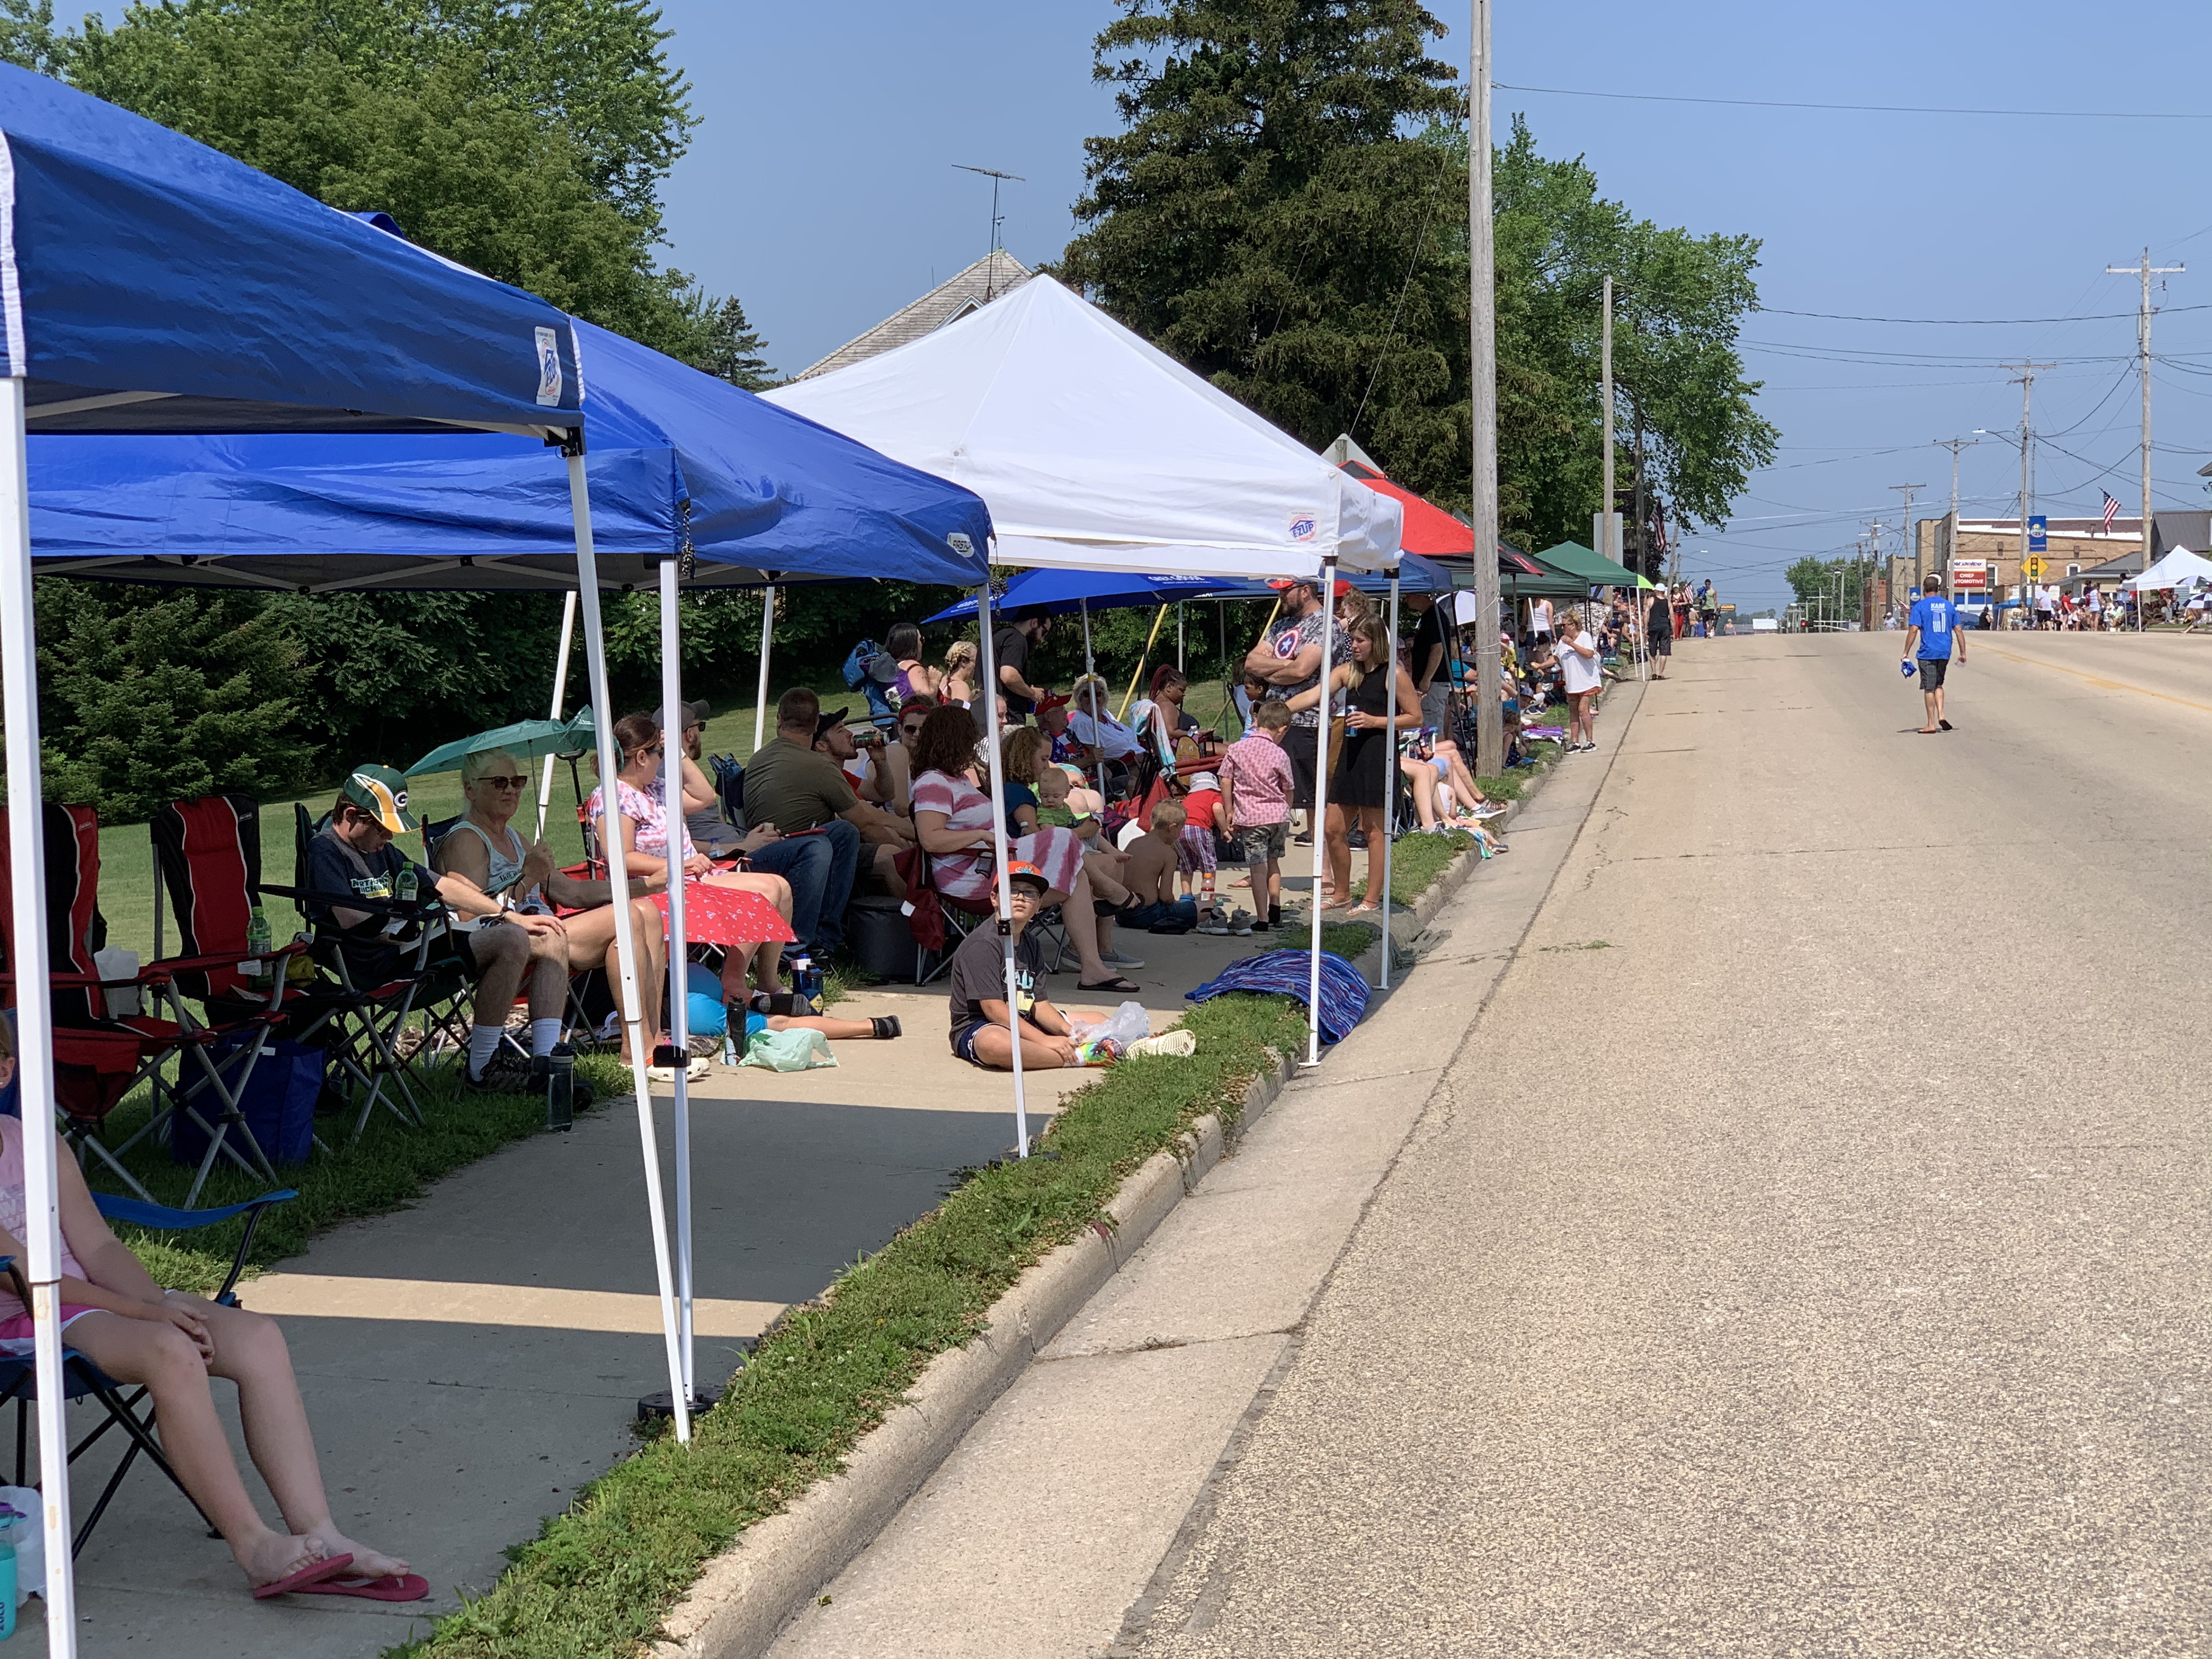 Green Bay Street was filled with tents as residents and visitors braved the heat to watch the Fourth of July parade pass in Bonduel on July 4.Luke Reimer | NEW Media